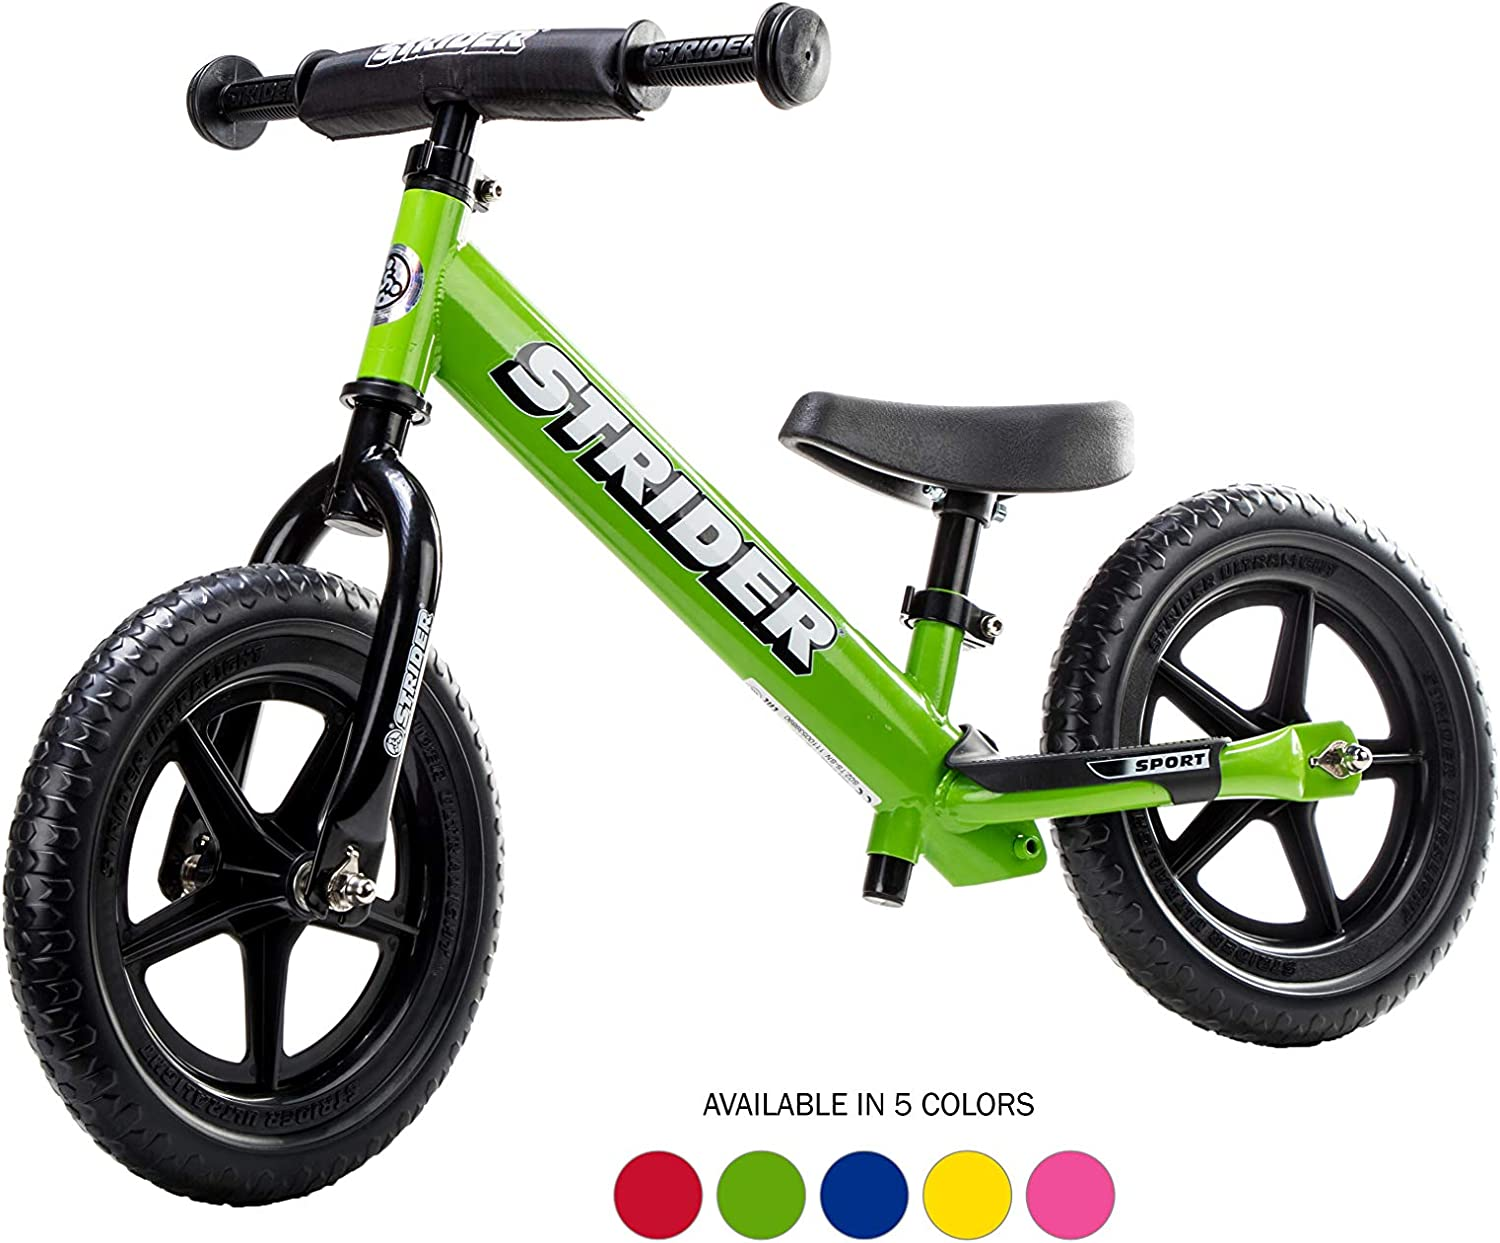 Strider kids' balance bike